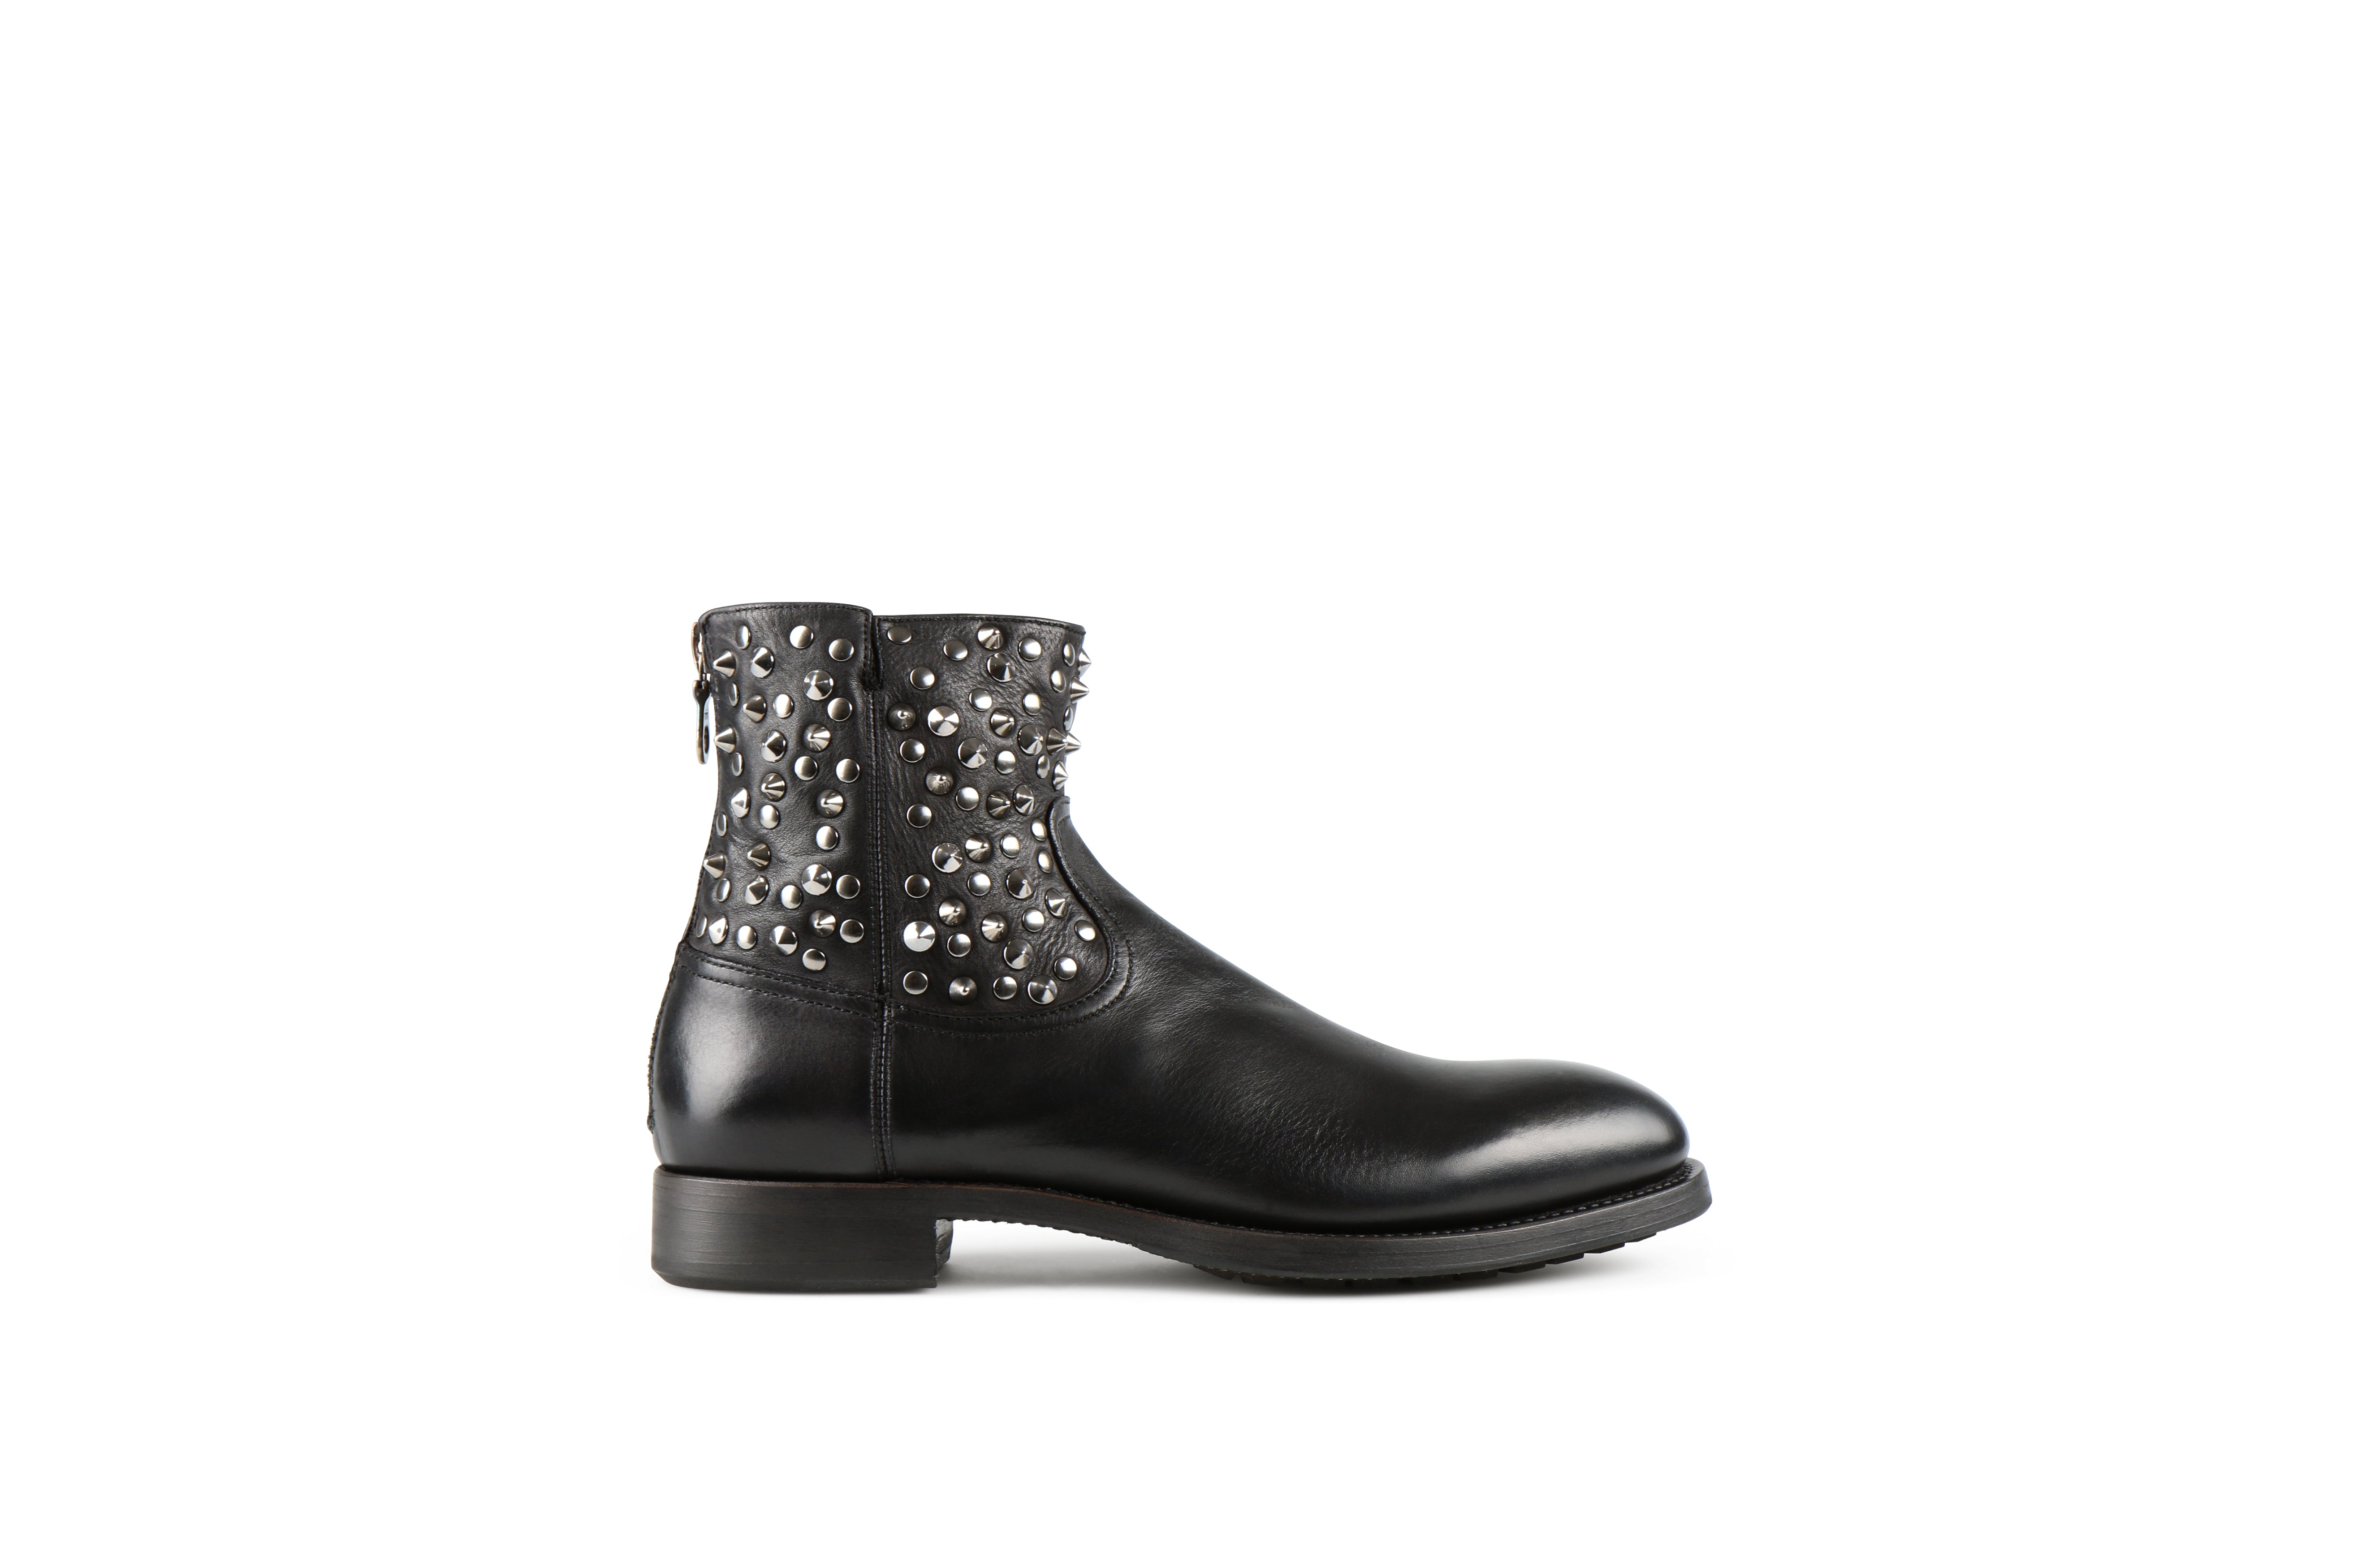 Flame Studs 2 Black Washed Calf Leather Zipper Boots